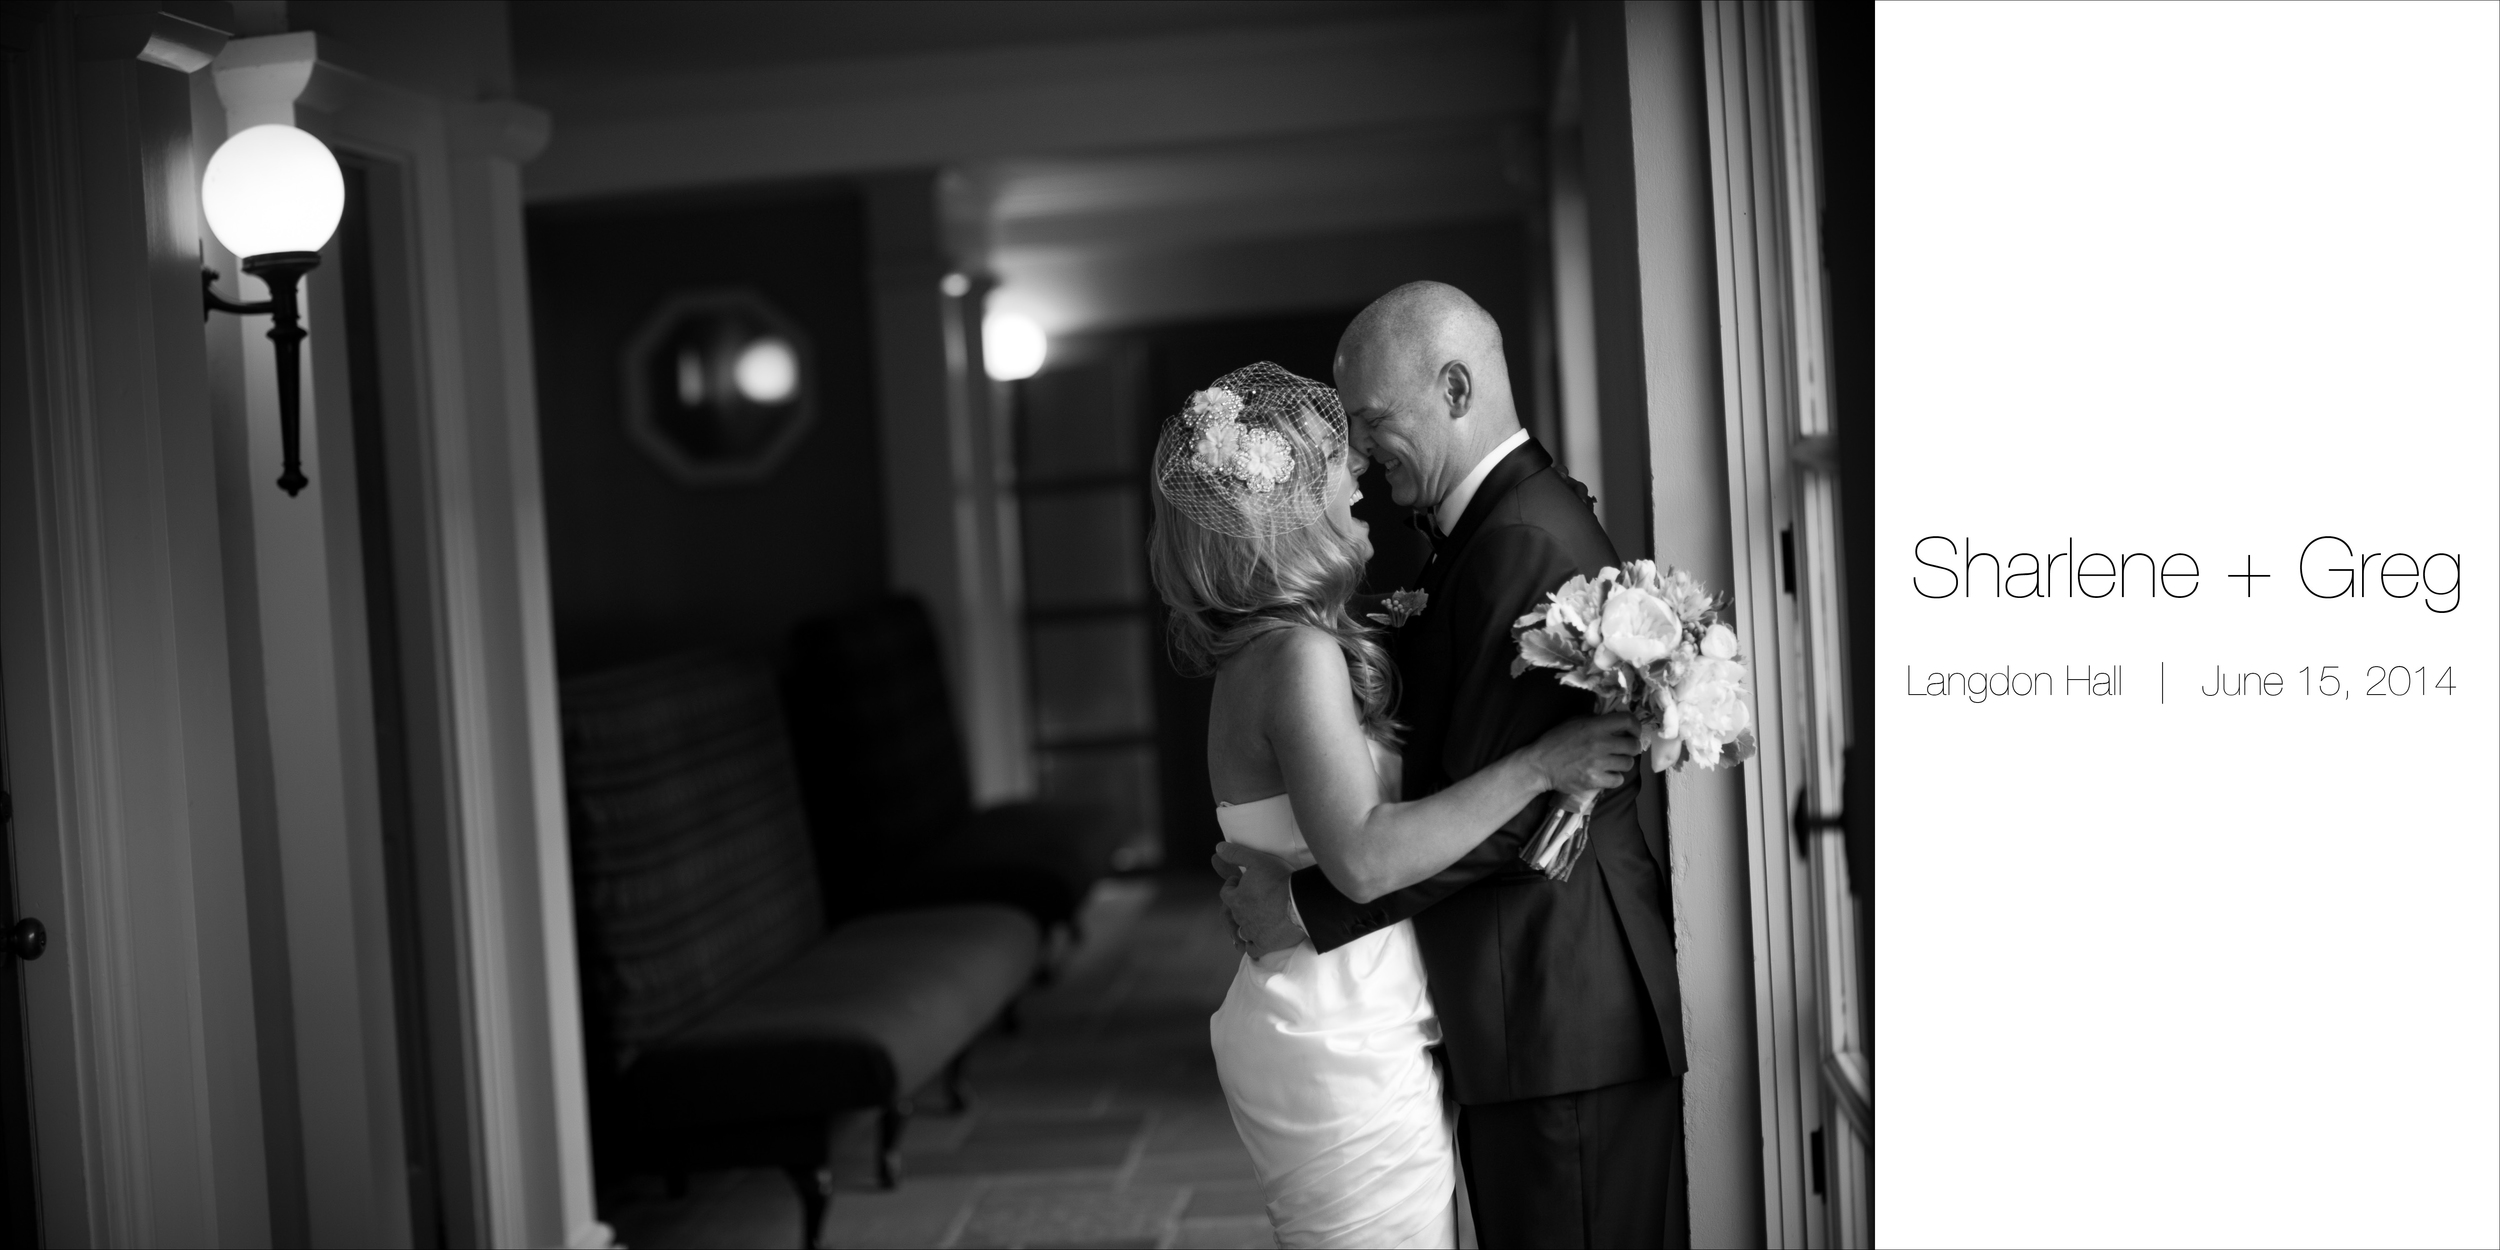 langdon-hall-wedding.jpg